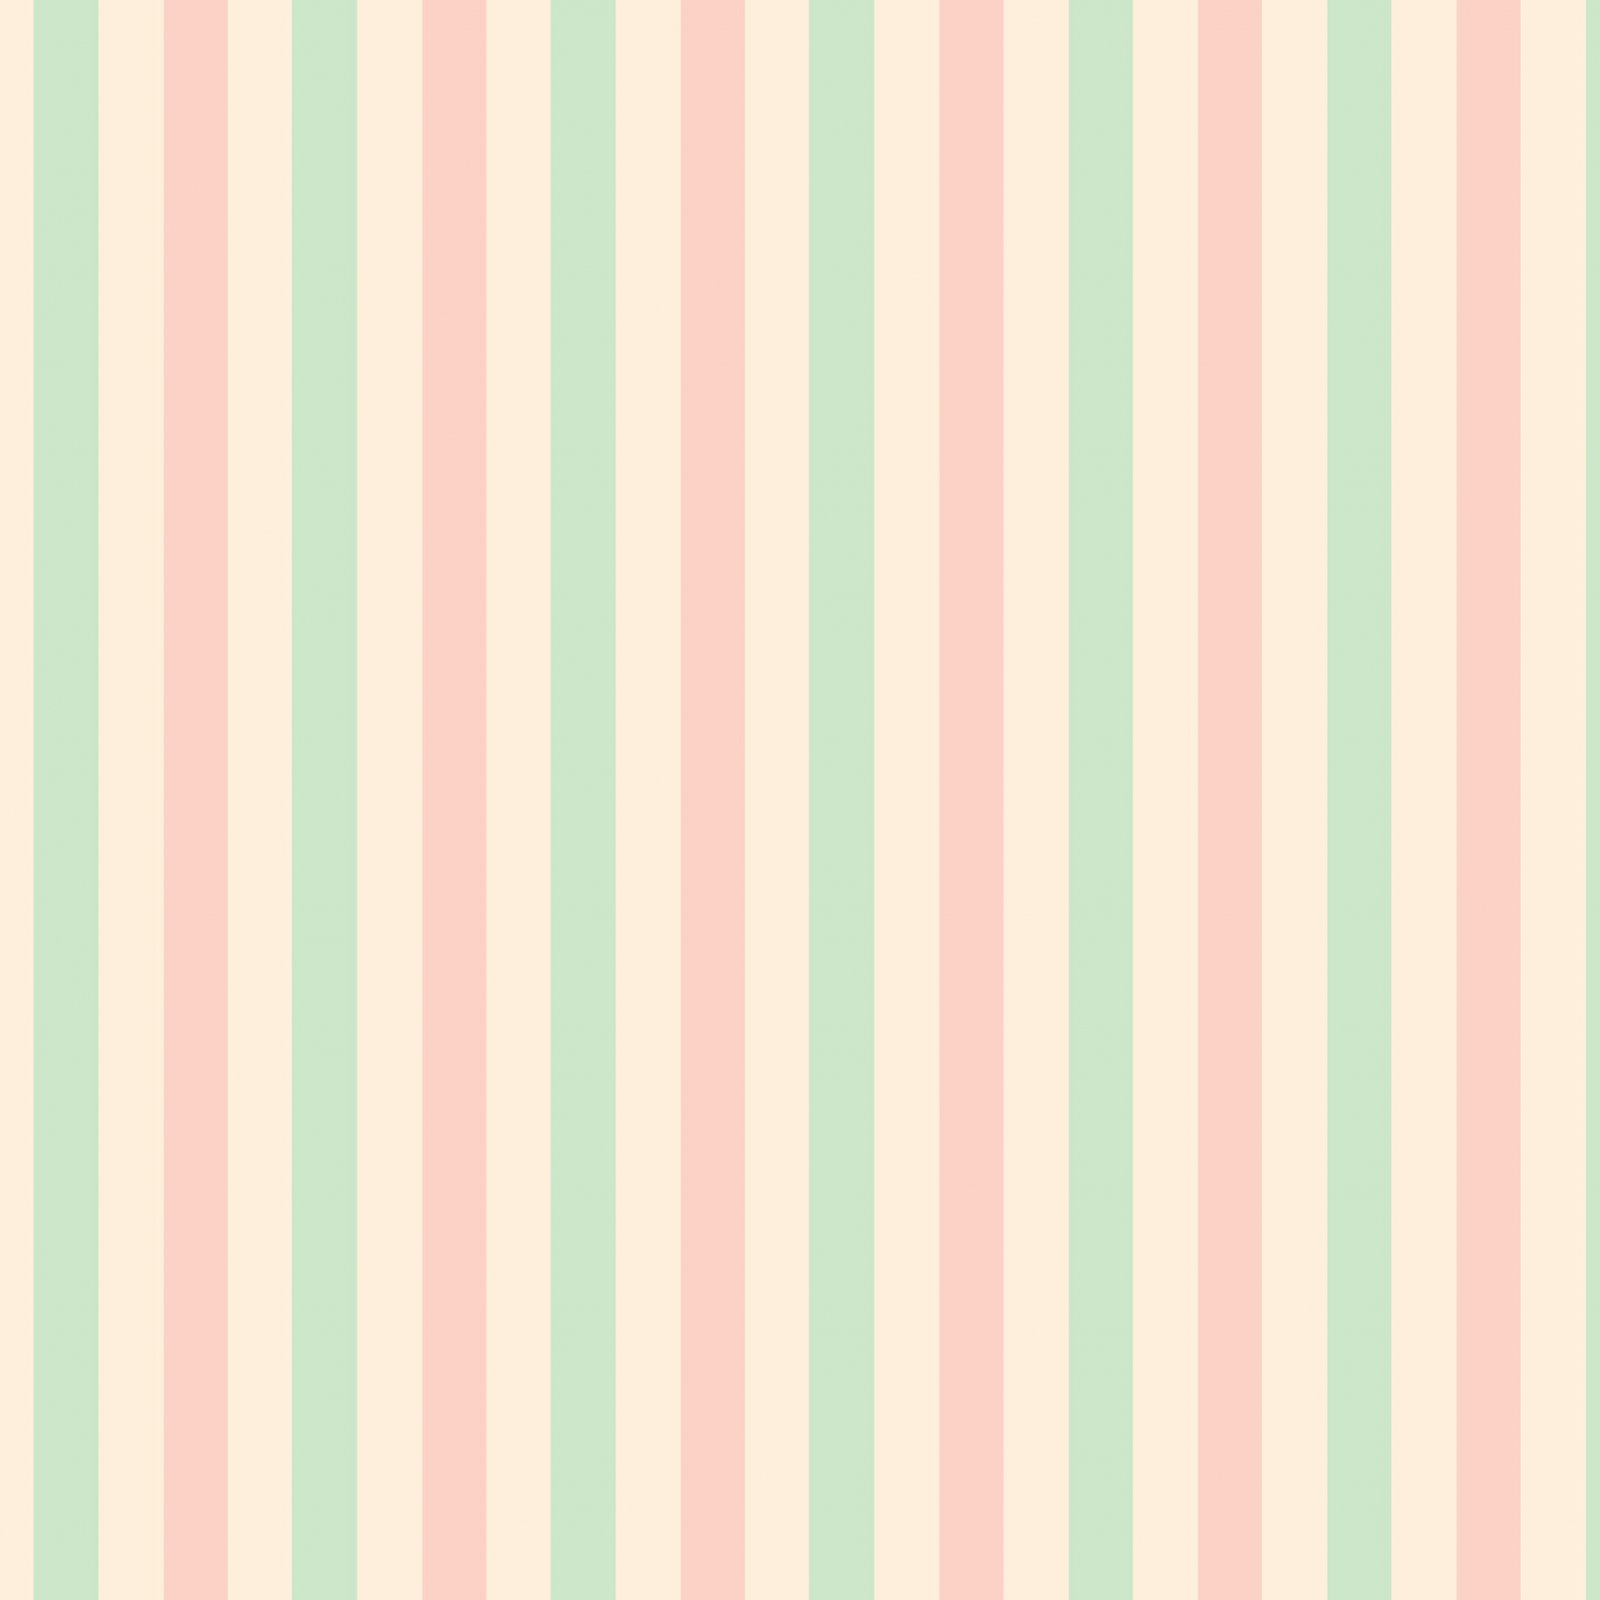 Little Wren Cottage Coordinate -  Mint, Pink and Cream Stripes